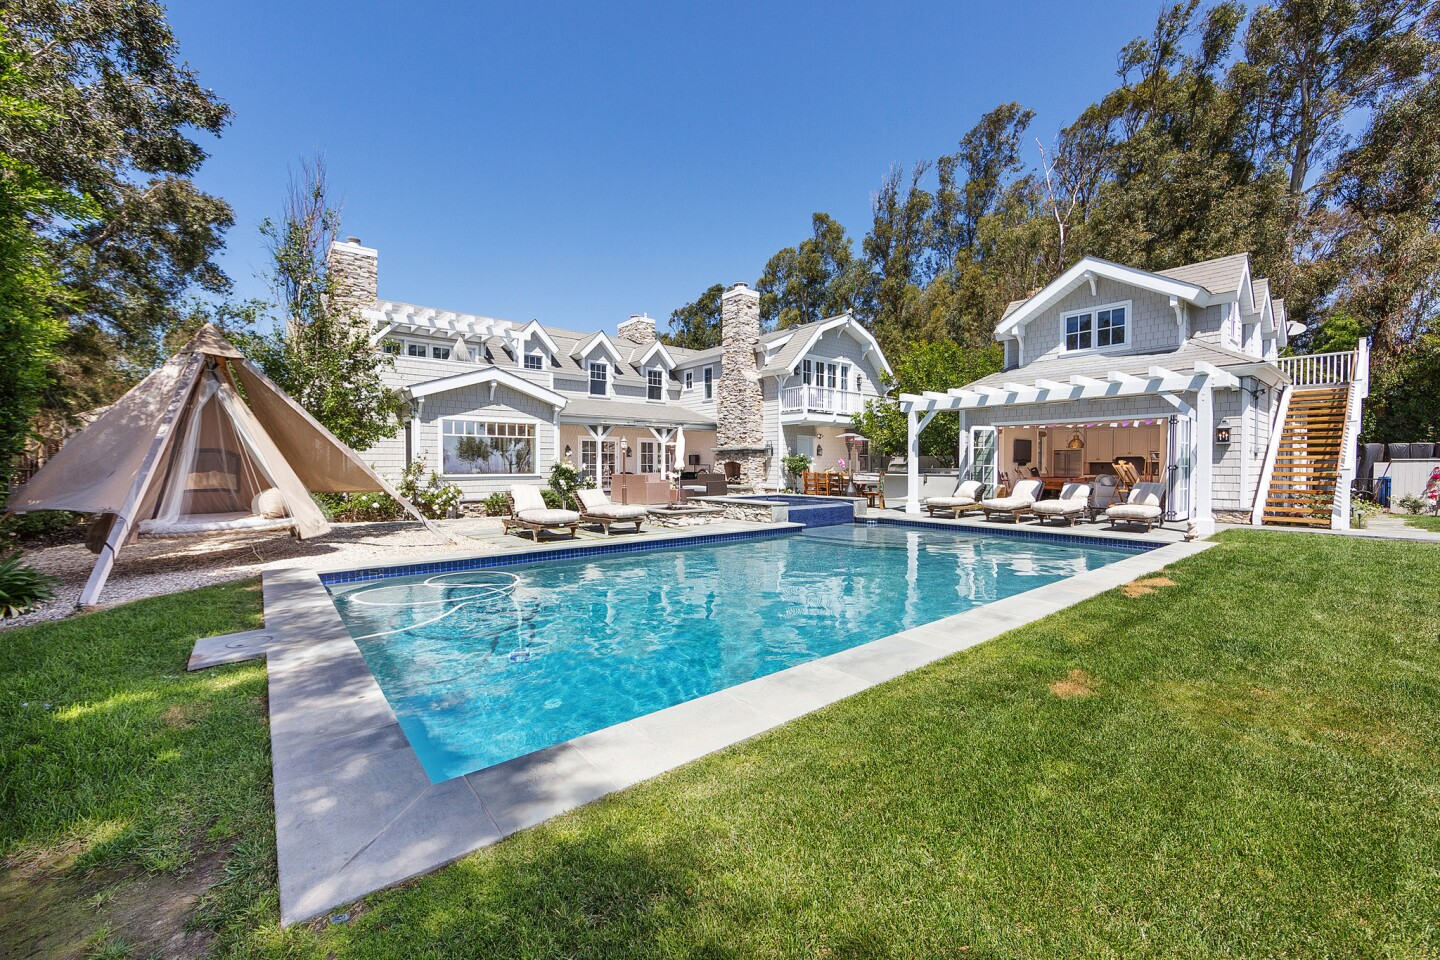 Home of the Day: America's got style -- Nantucket by way of Malibu